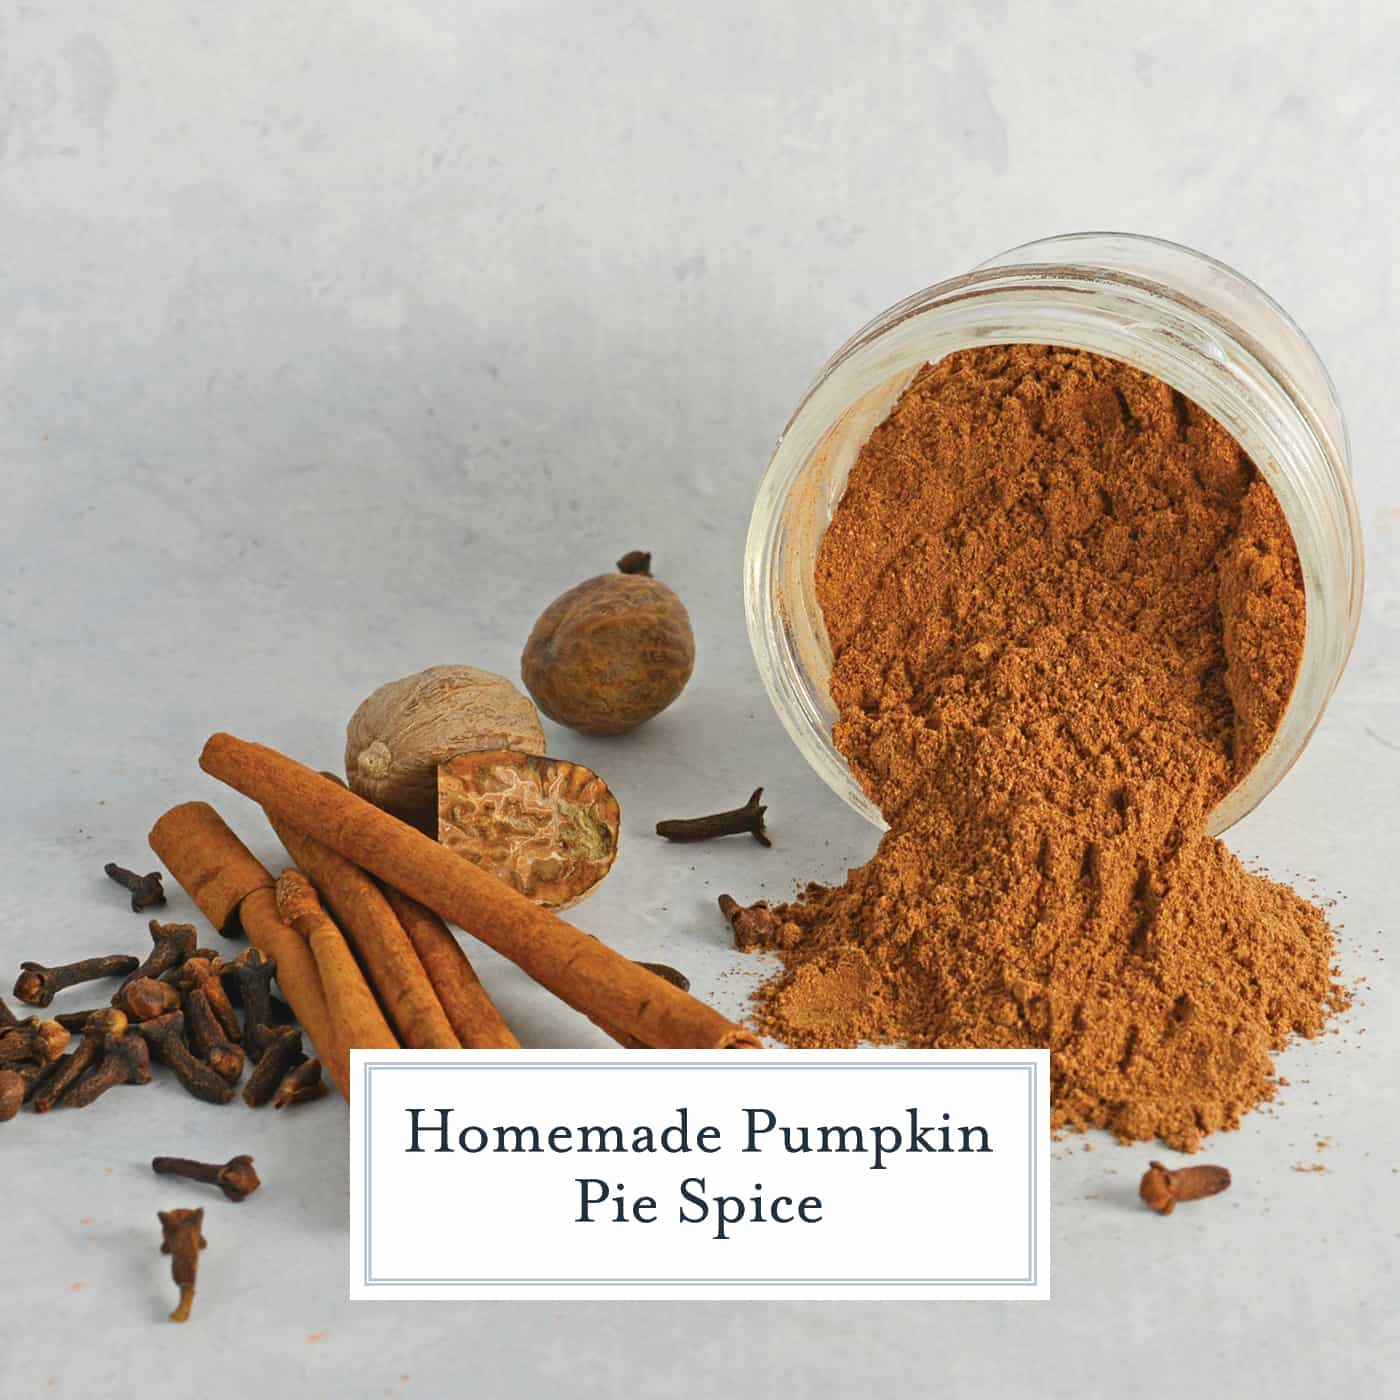 Homemade Pumpkin Pie Spice is a simple recipe made from ingredients you already have in your pantry! It also makes an excellent homemade gift! #homemadepumpkinpiespice #whatisinpumpkinpiespice #pumpkinspice www.savoryexperiments.com